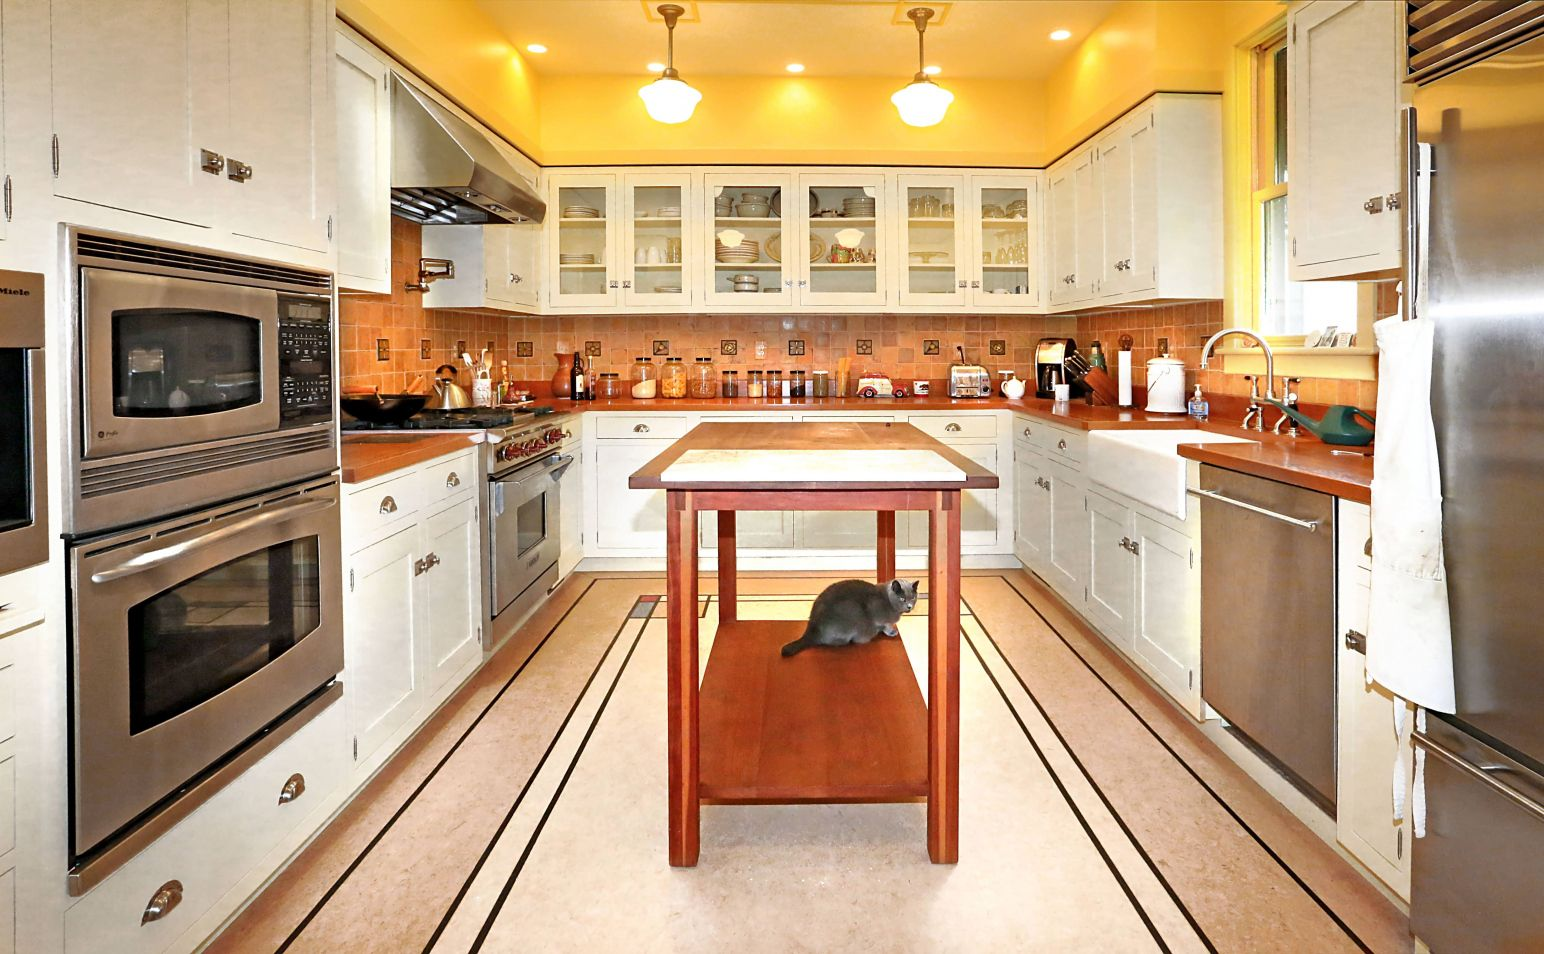 Total Kitchen Remodel Cost Kitchen Trash Can Ideas Check More - Total kitchen remodel cost